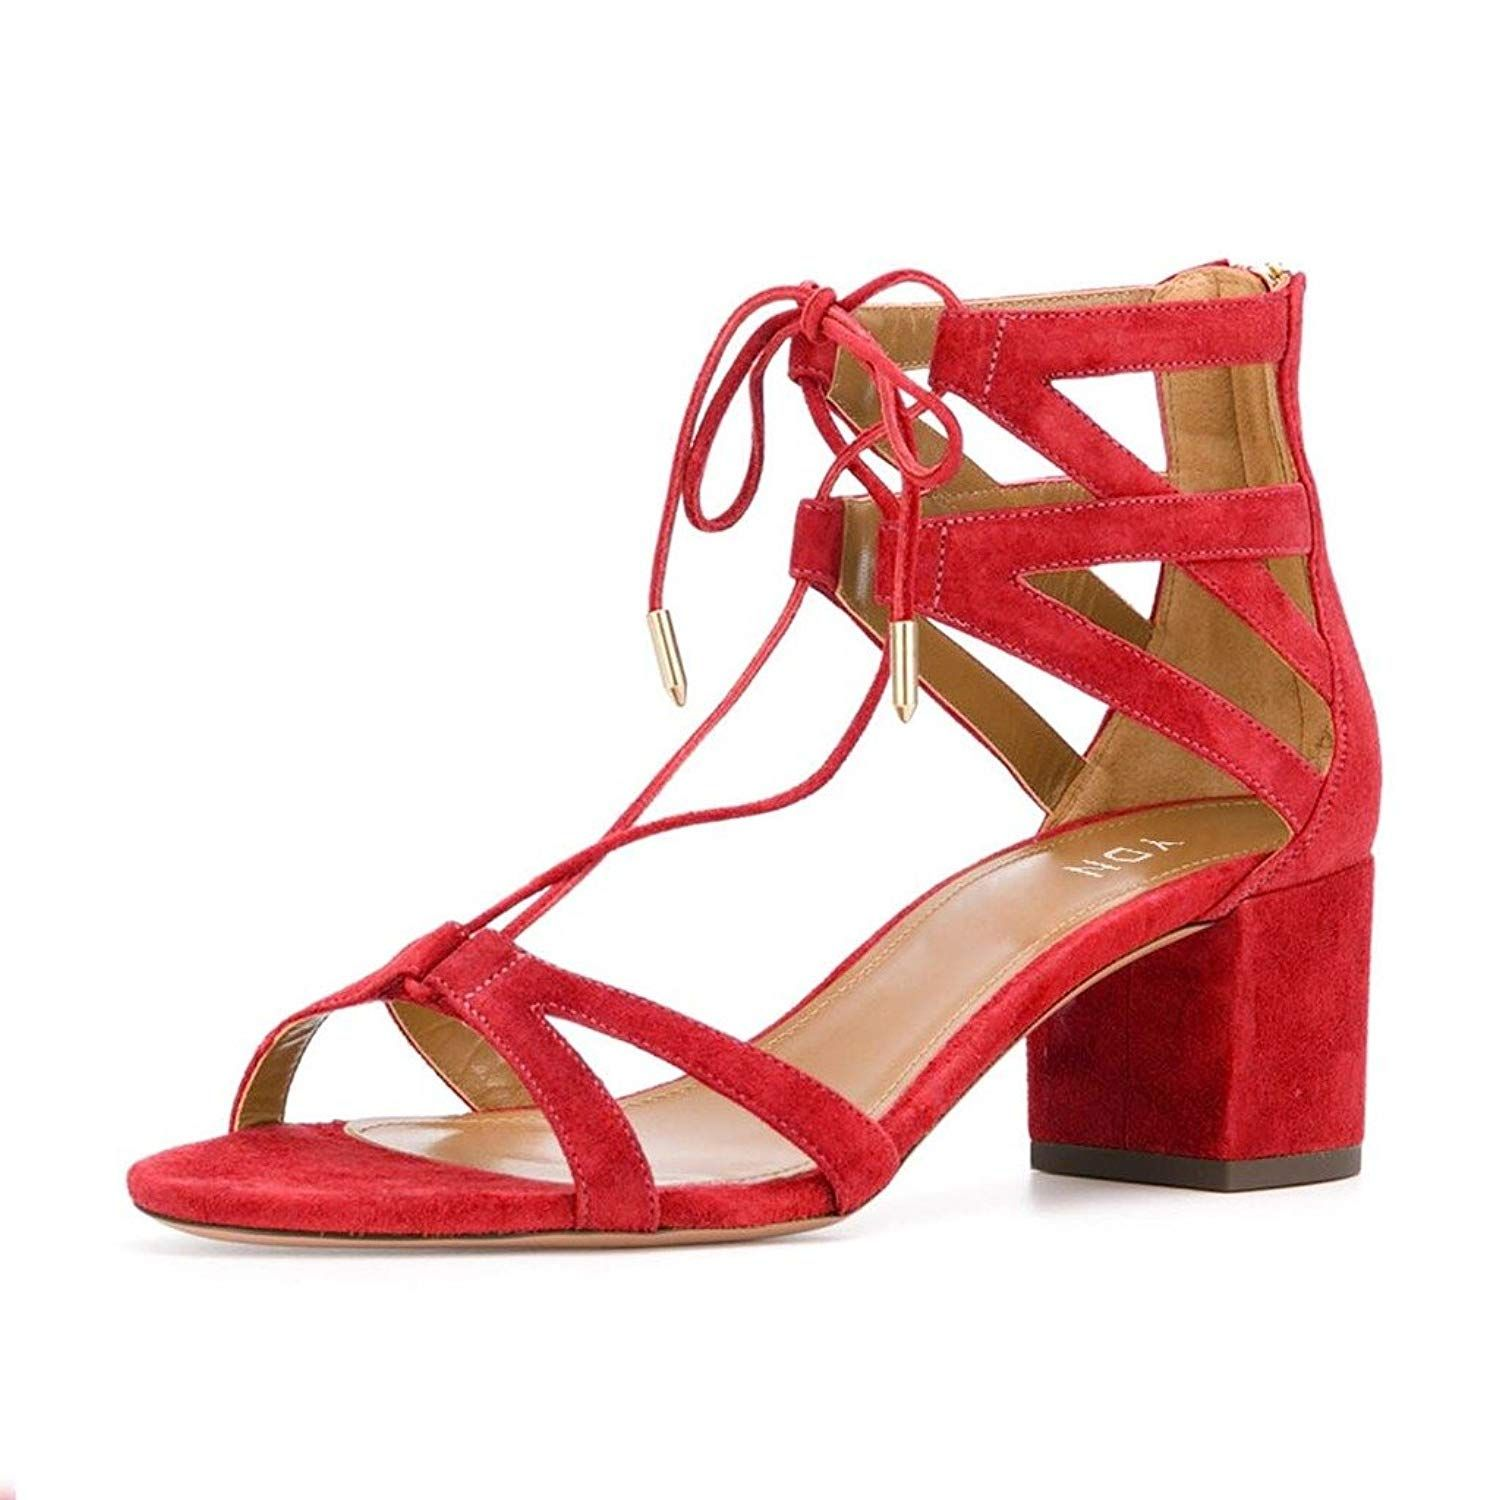 red strappy sandals low heel